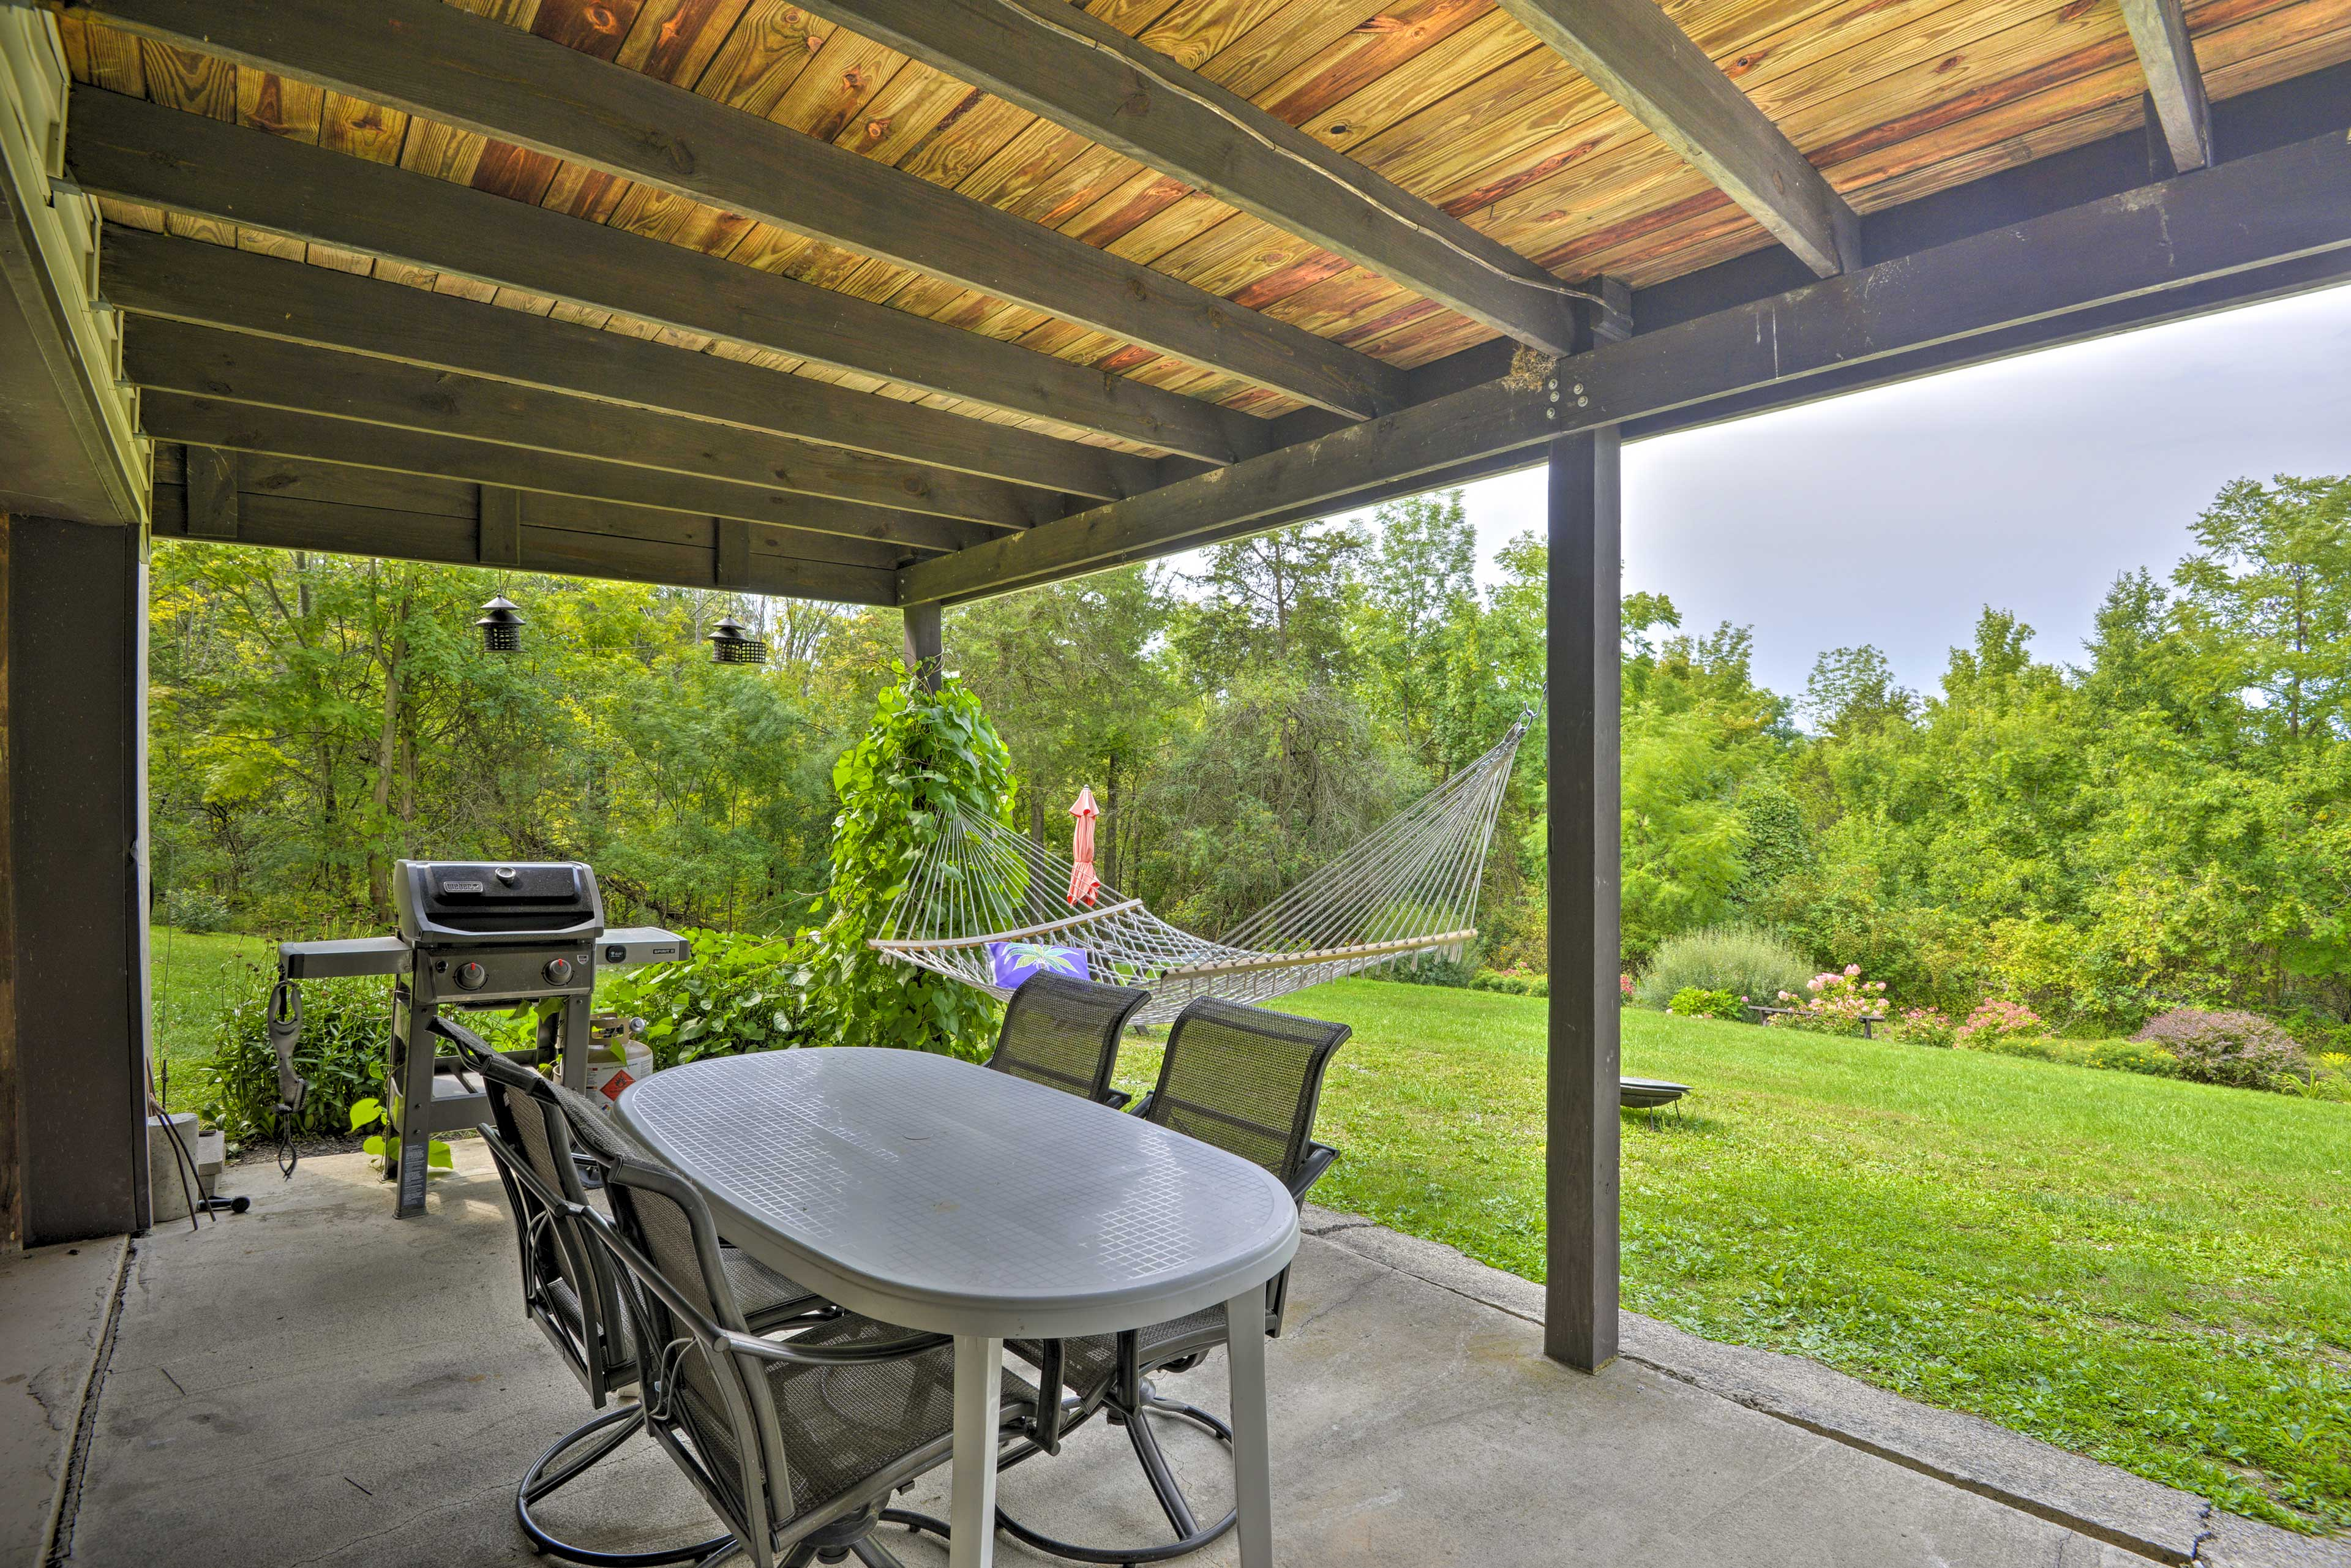 Enjoy an afternoon cookout on the covered deck.